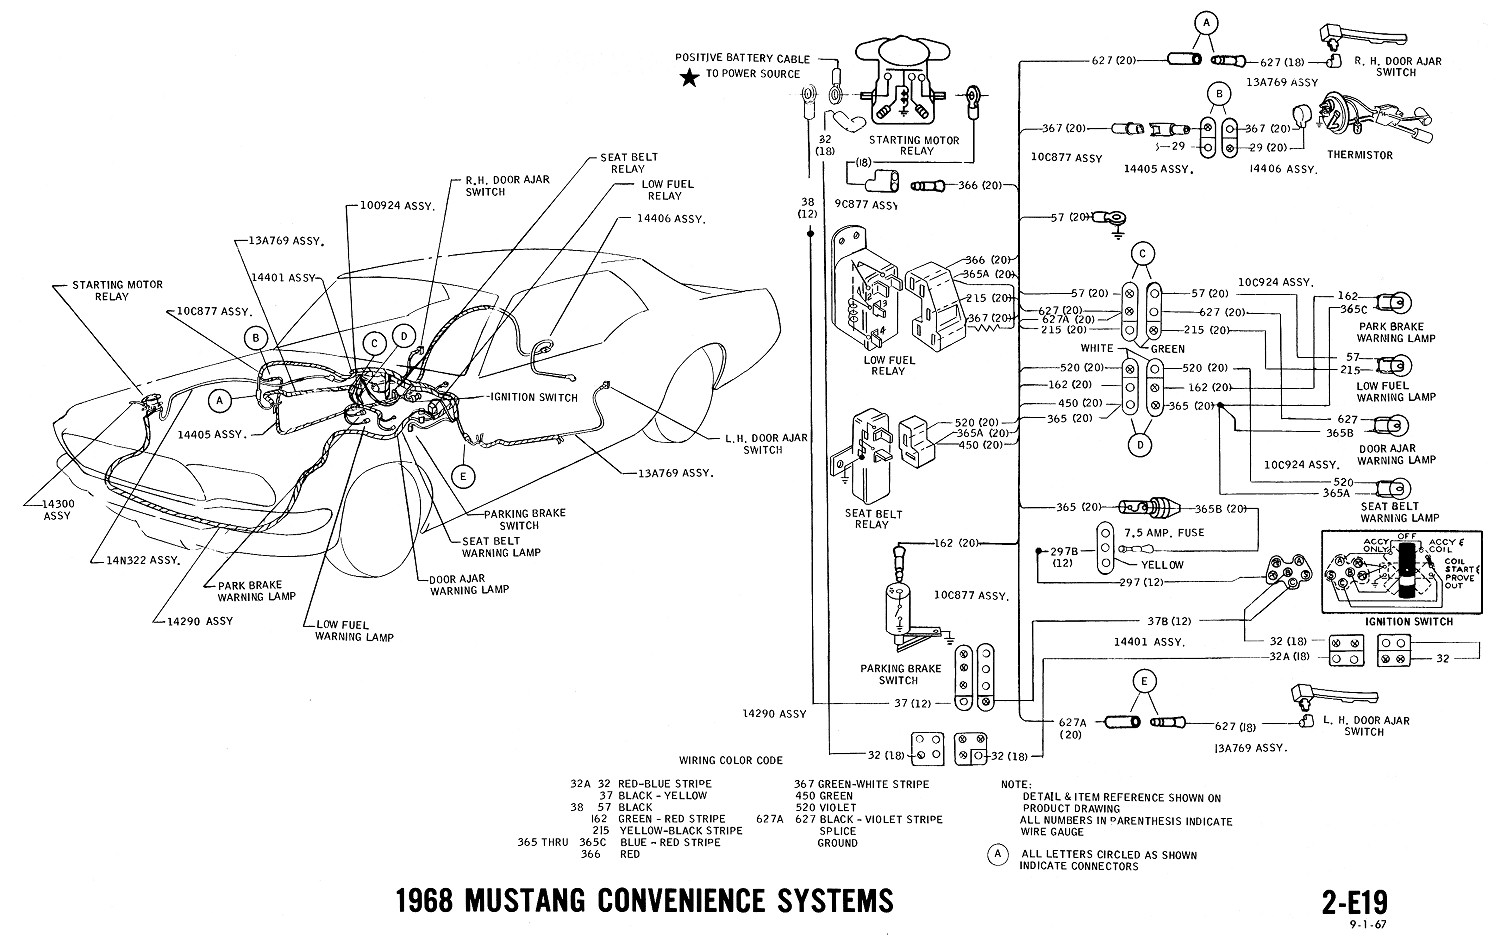 66 Mustang Fuse Box Diagram On Wiring Diagram For 1965 Ford Mustang